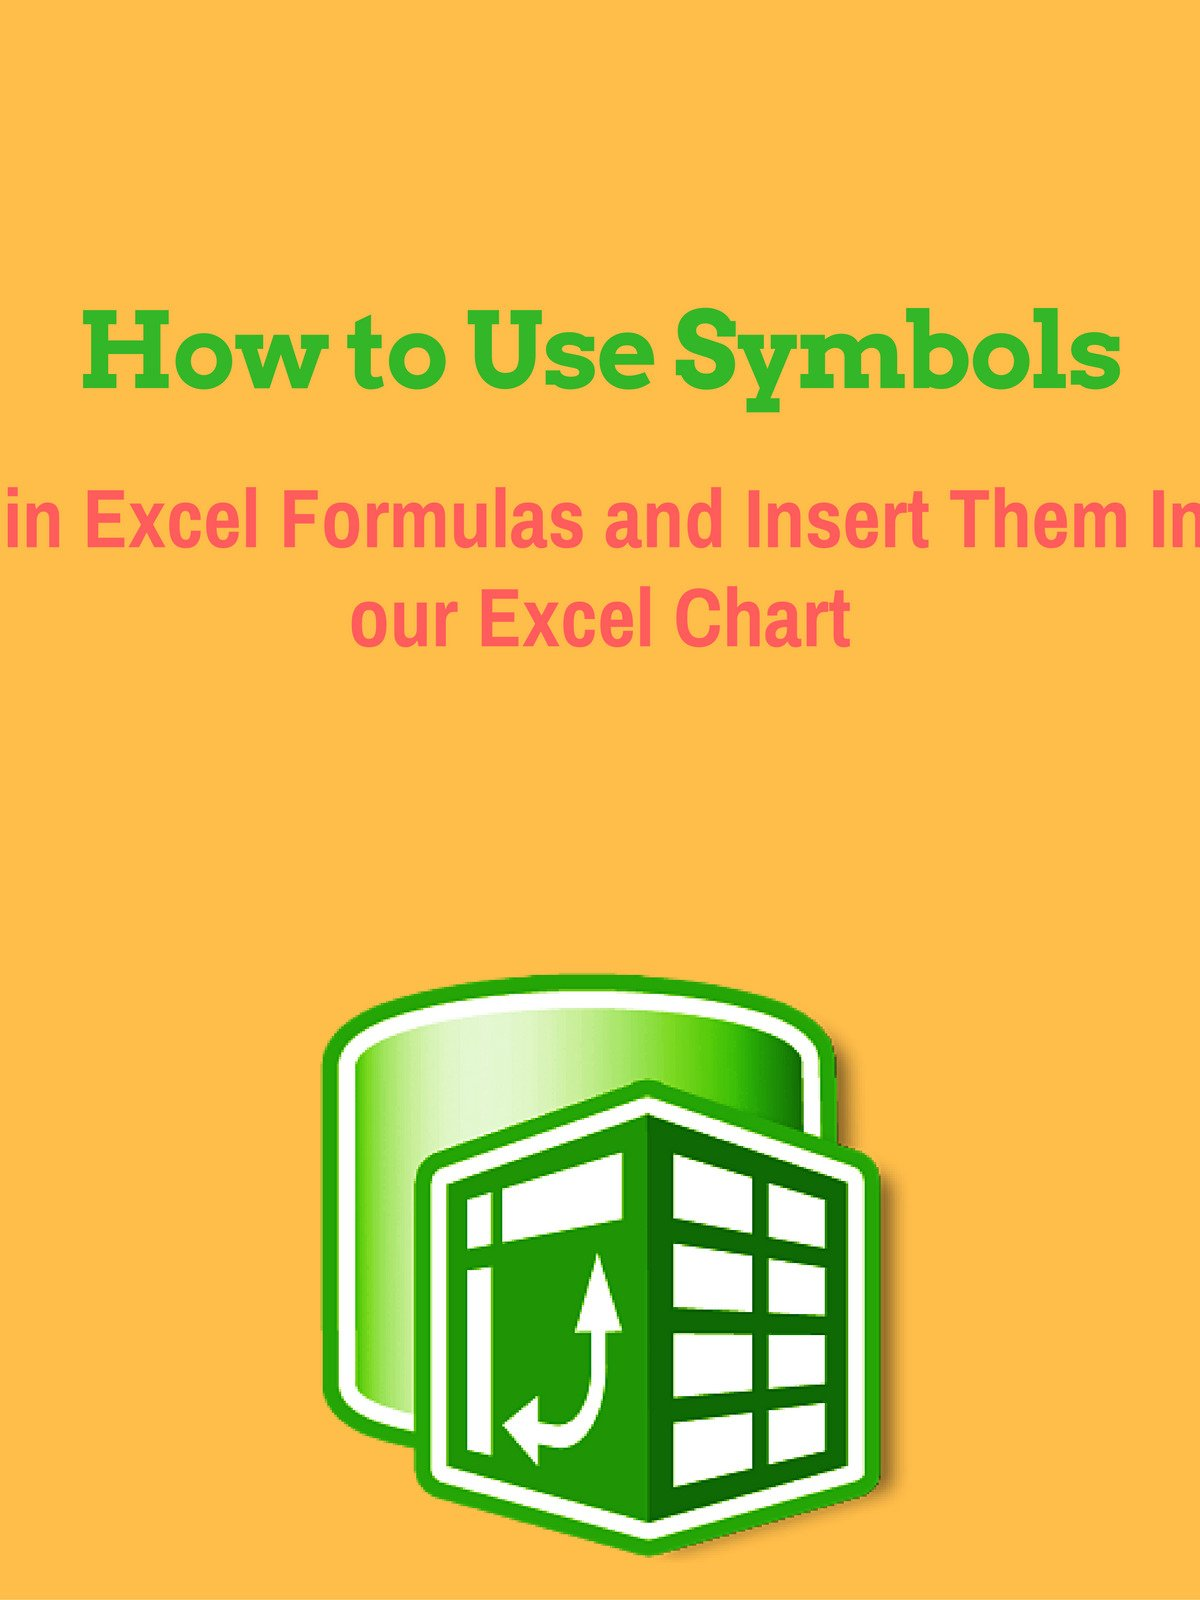 Amazon how to use symbols in excel formulas and insert them amazon how to use symbols in excel formulas and insert them into our excel chart andreas exadaktylos buycottarizona